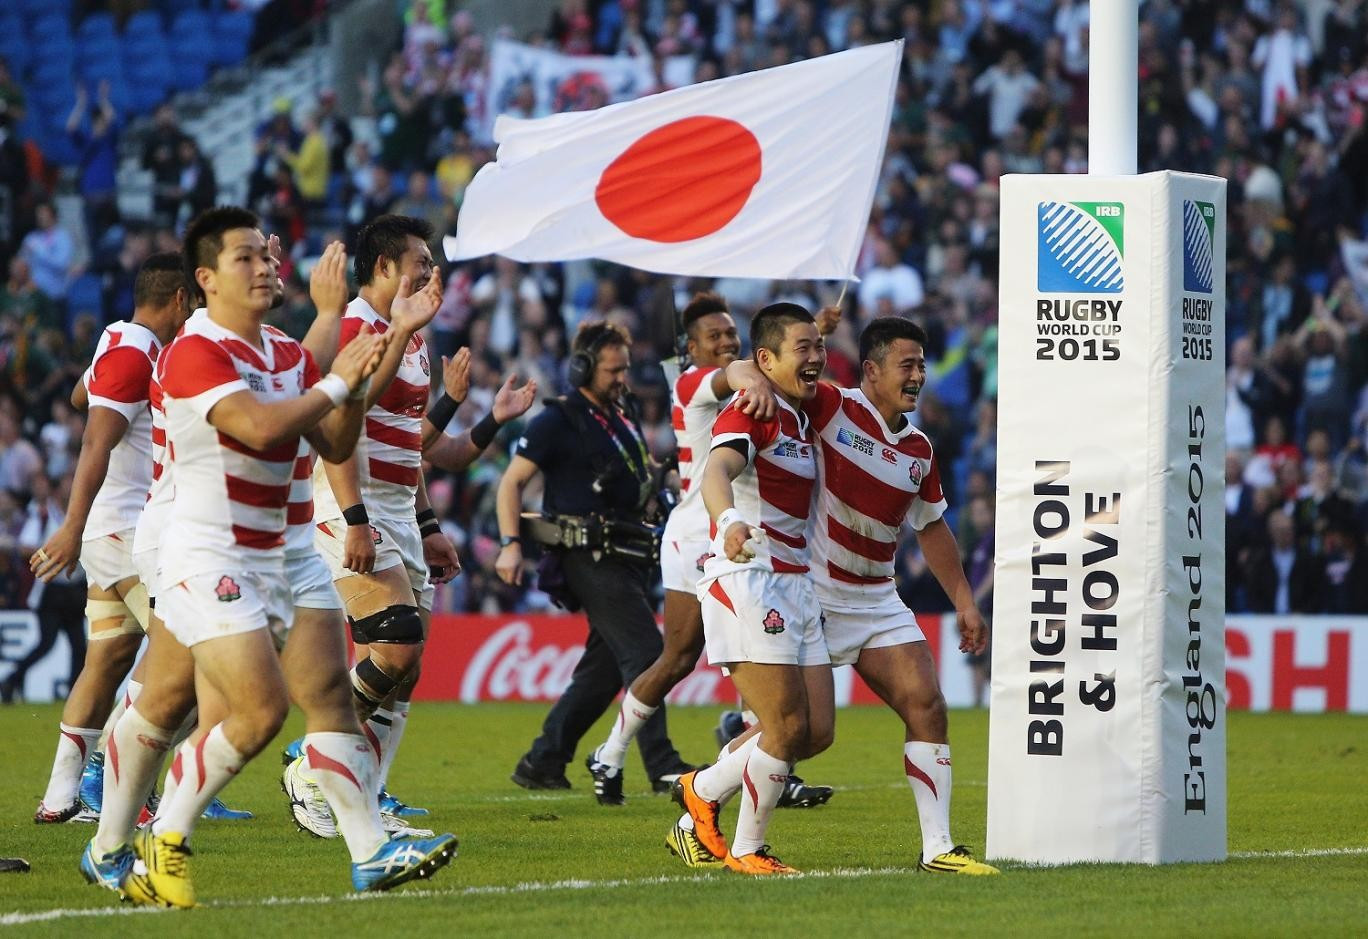 Japan caused one of the biggest shocks in the history of the Rugby World Cup when they beat South Africa during the 2015 tournament in England ©Getty Images